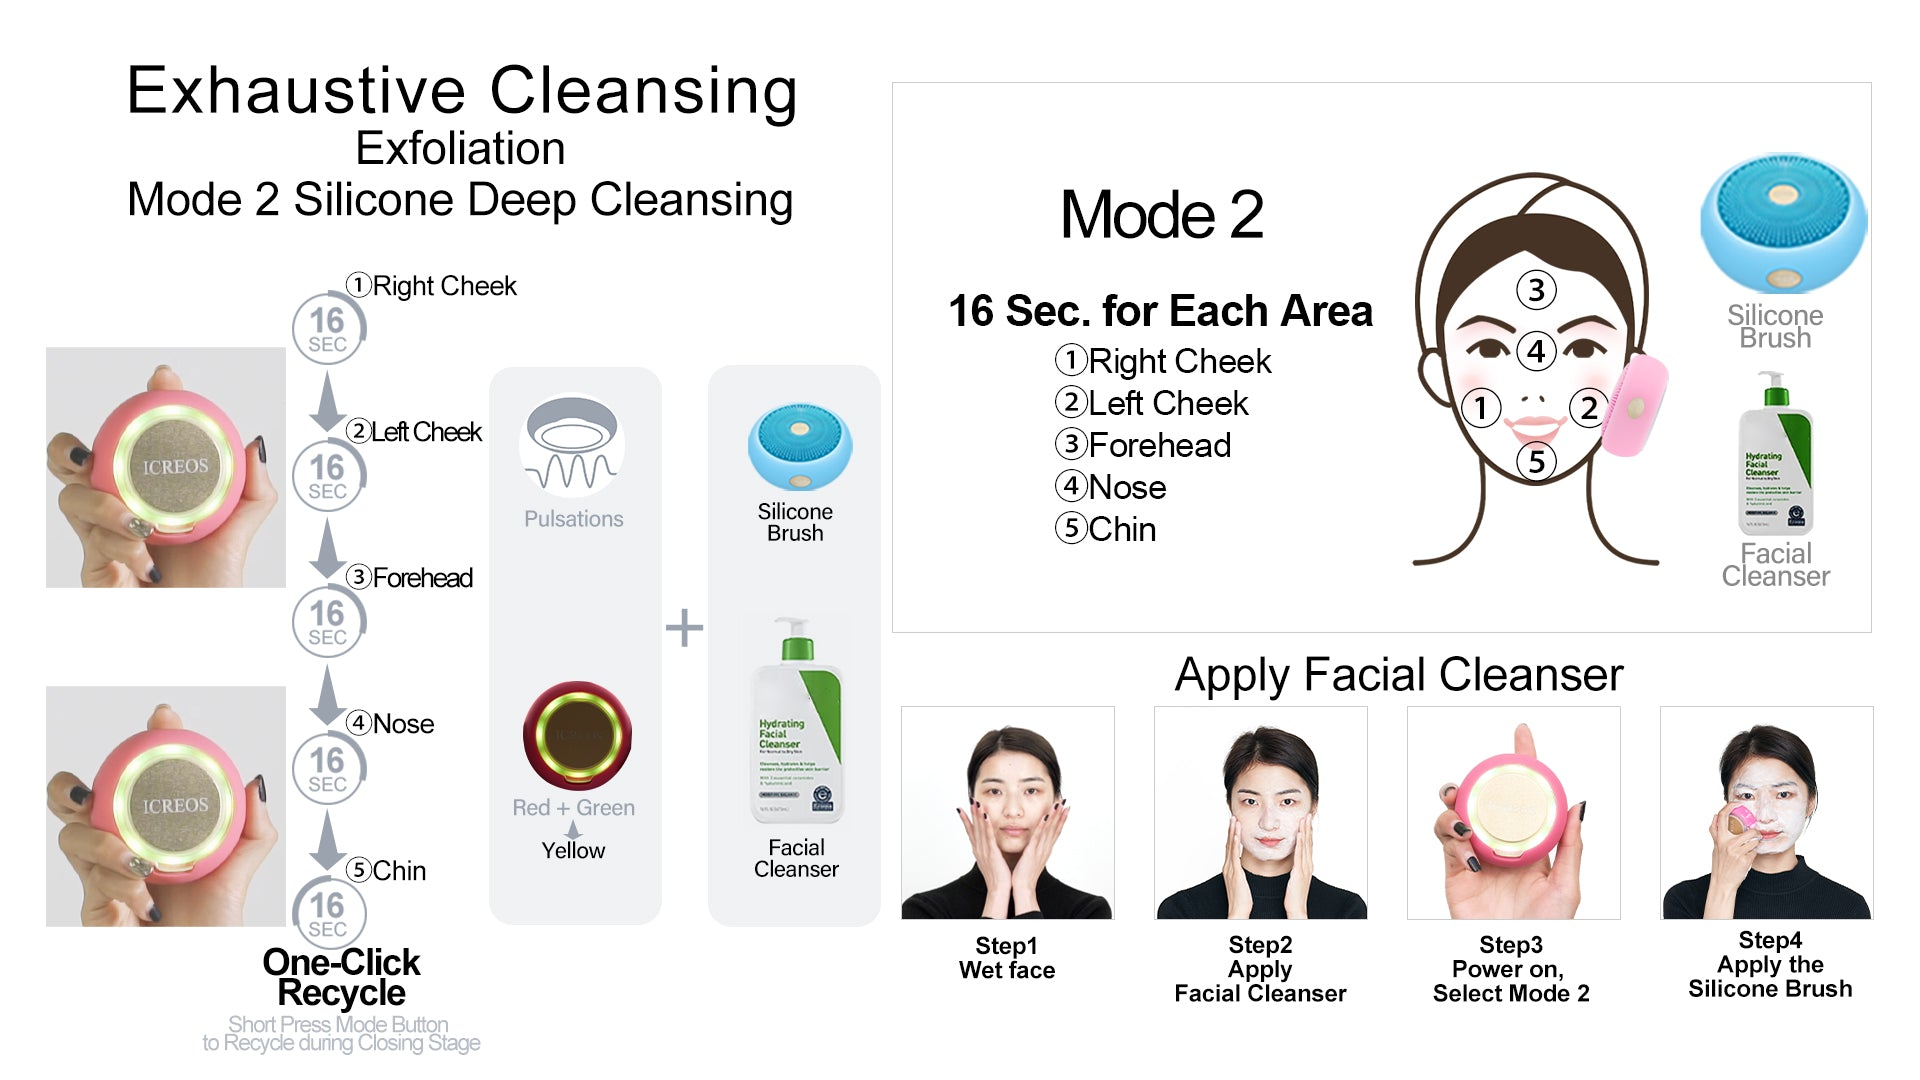 ICREOSMNI-Smart_Modes_2-Silicone_Cleansing-2-0.jpg